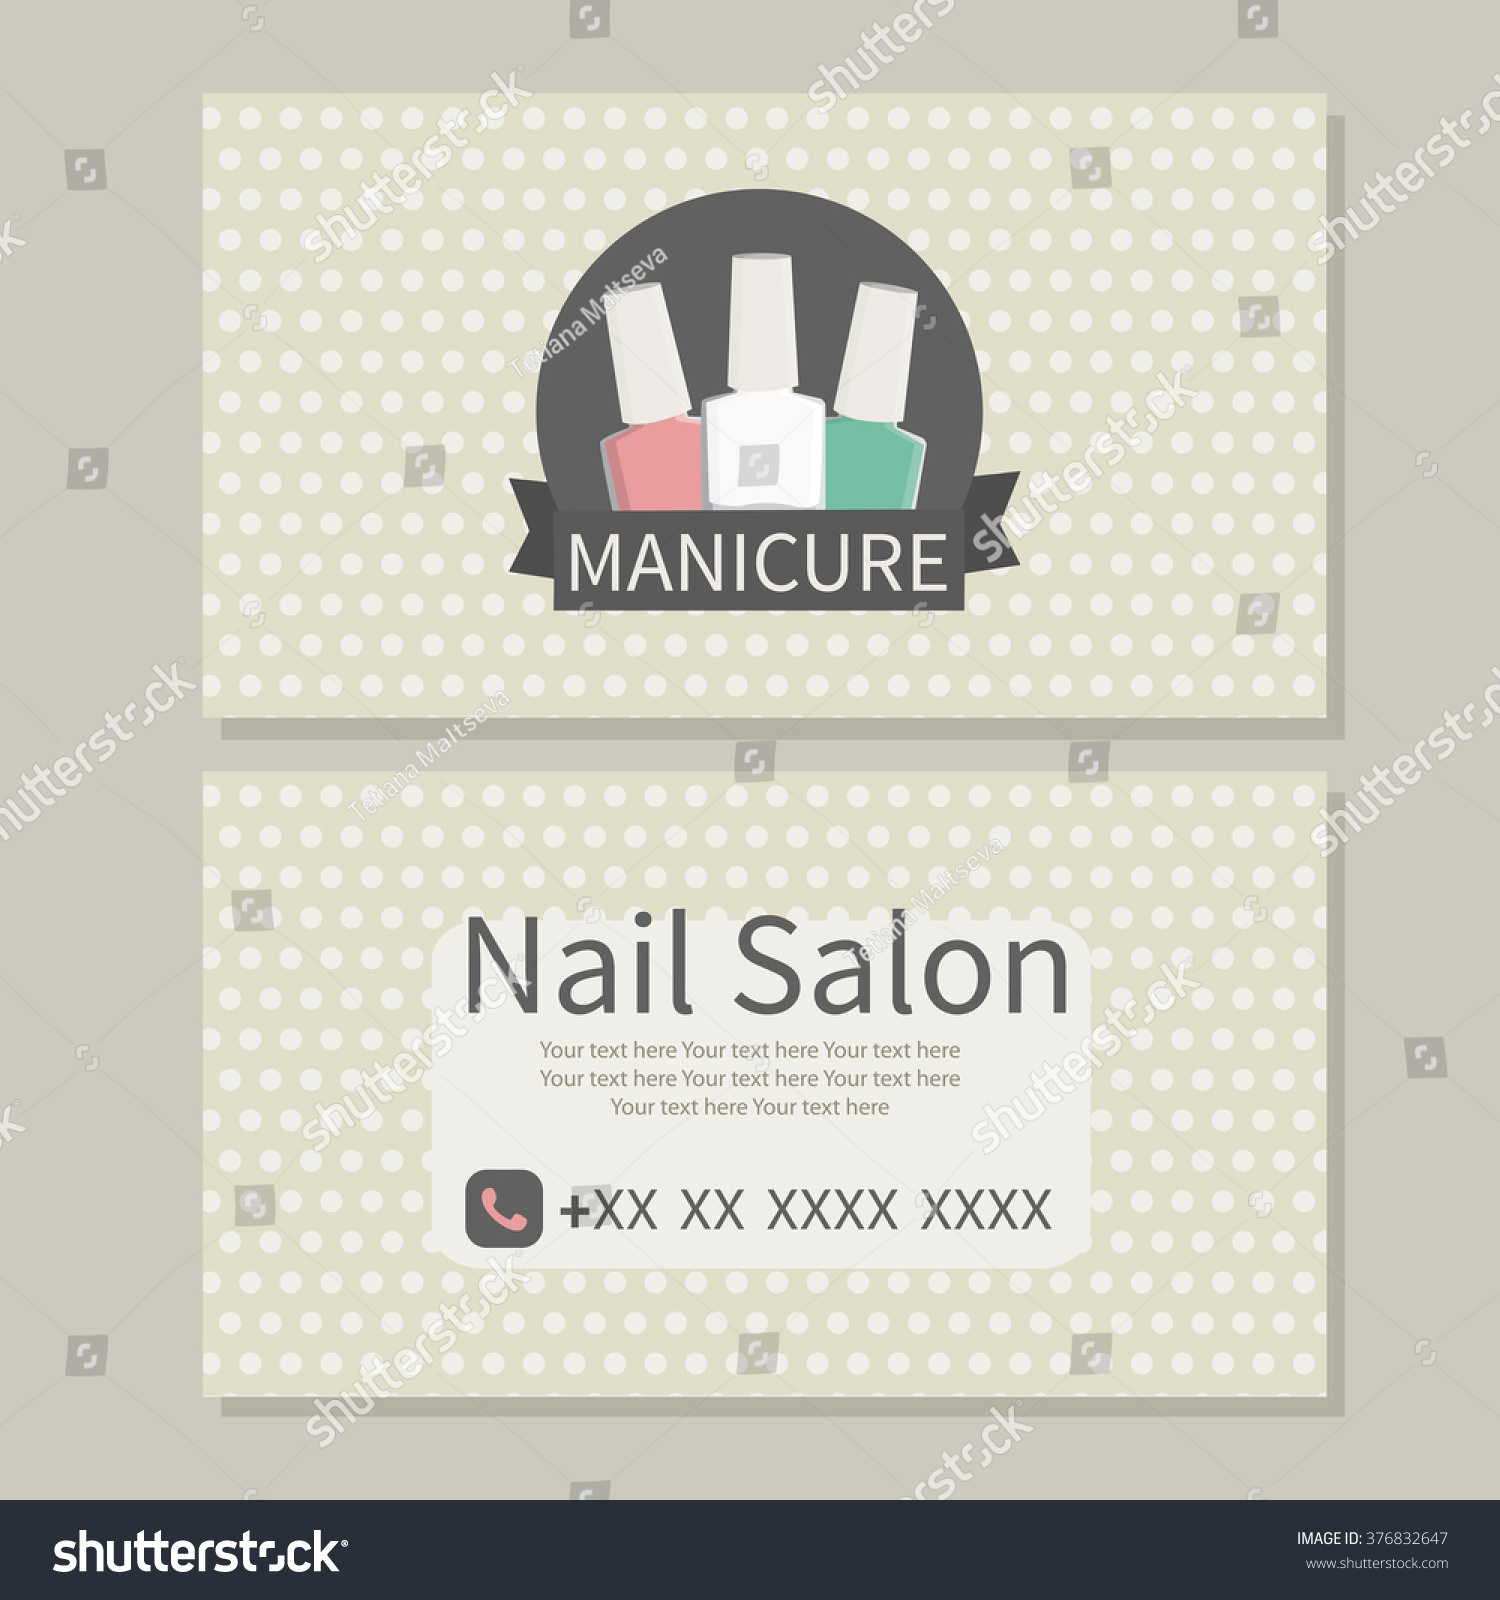 Beauty Manicure Care Nail Salon Cute Stock Vector 376832647 ...